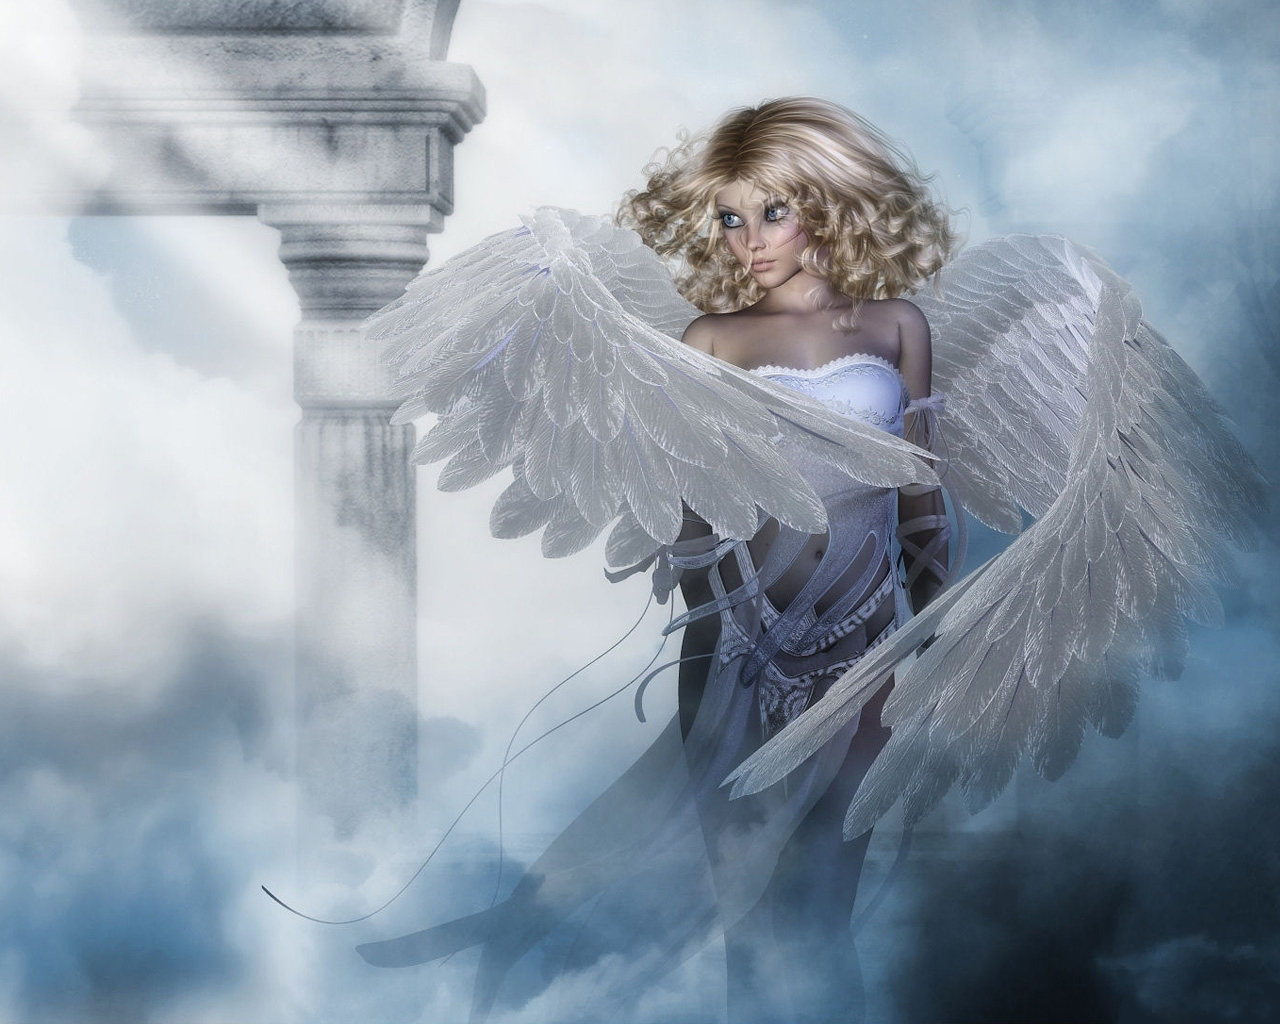 heavenly angels hd wallpapers - photo #6